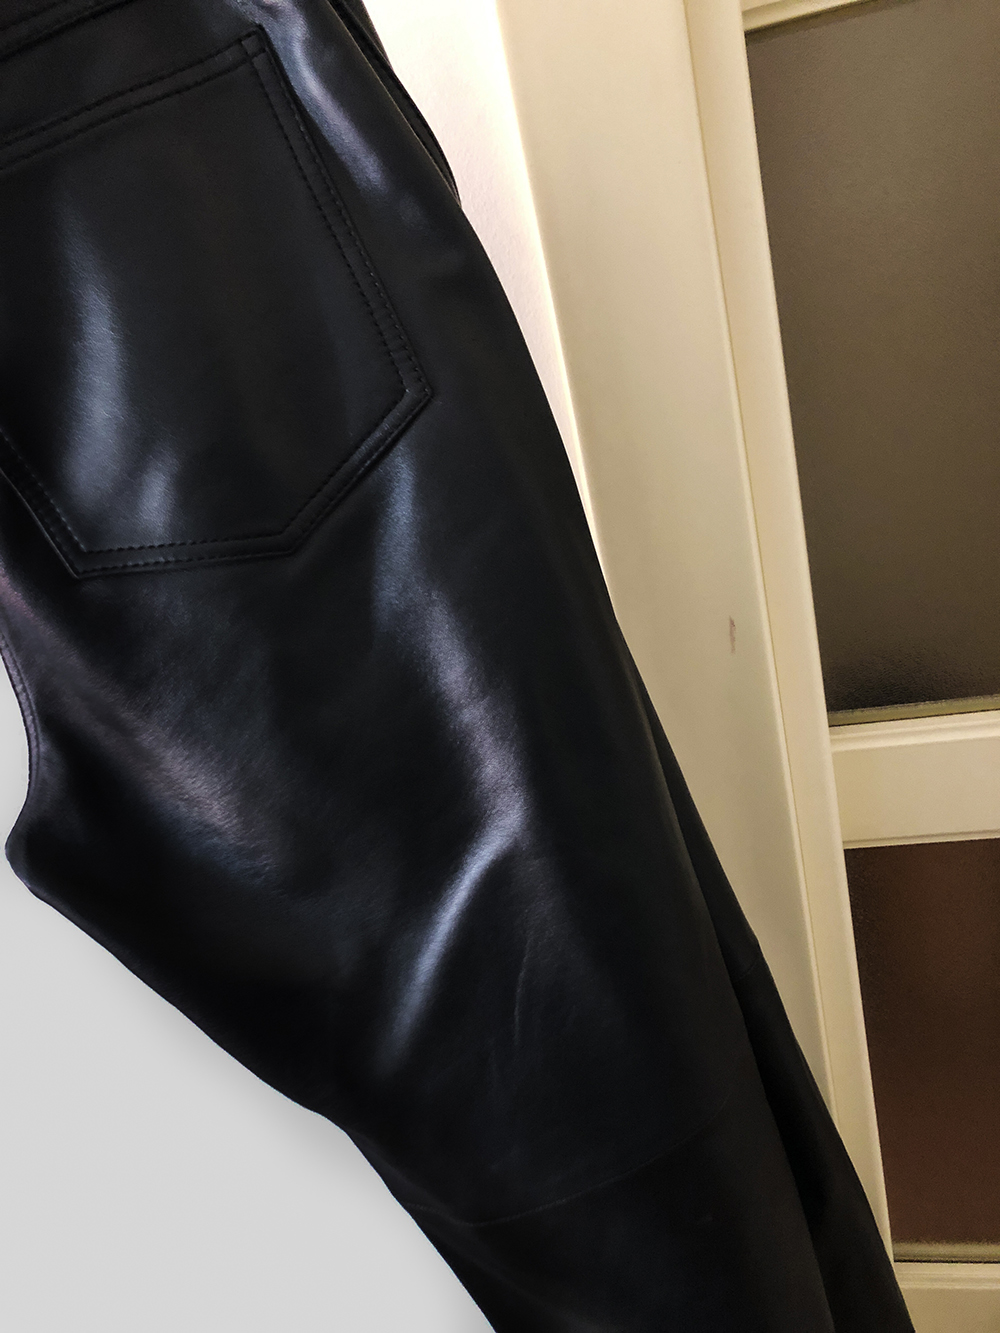 Trini | Max Mara leather pants